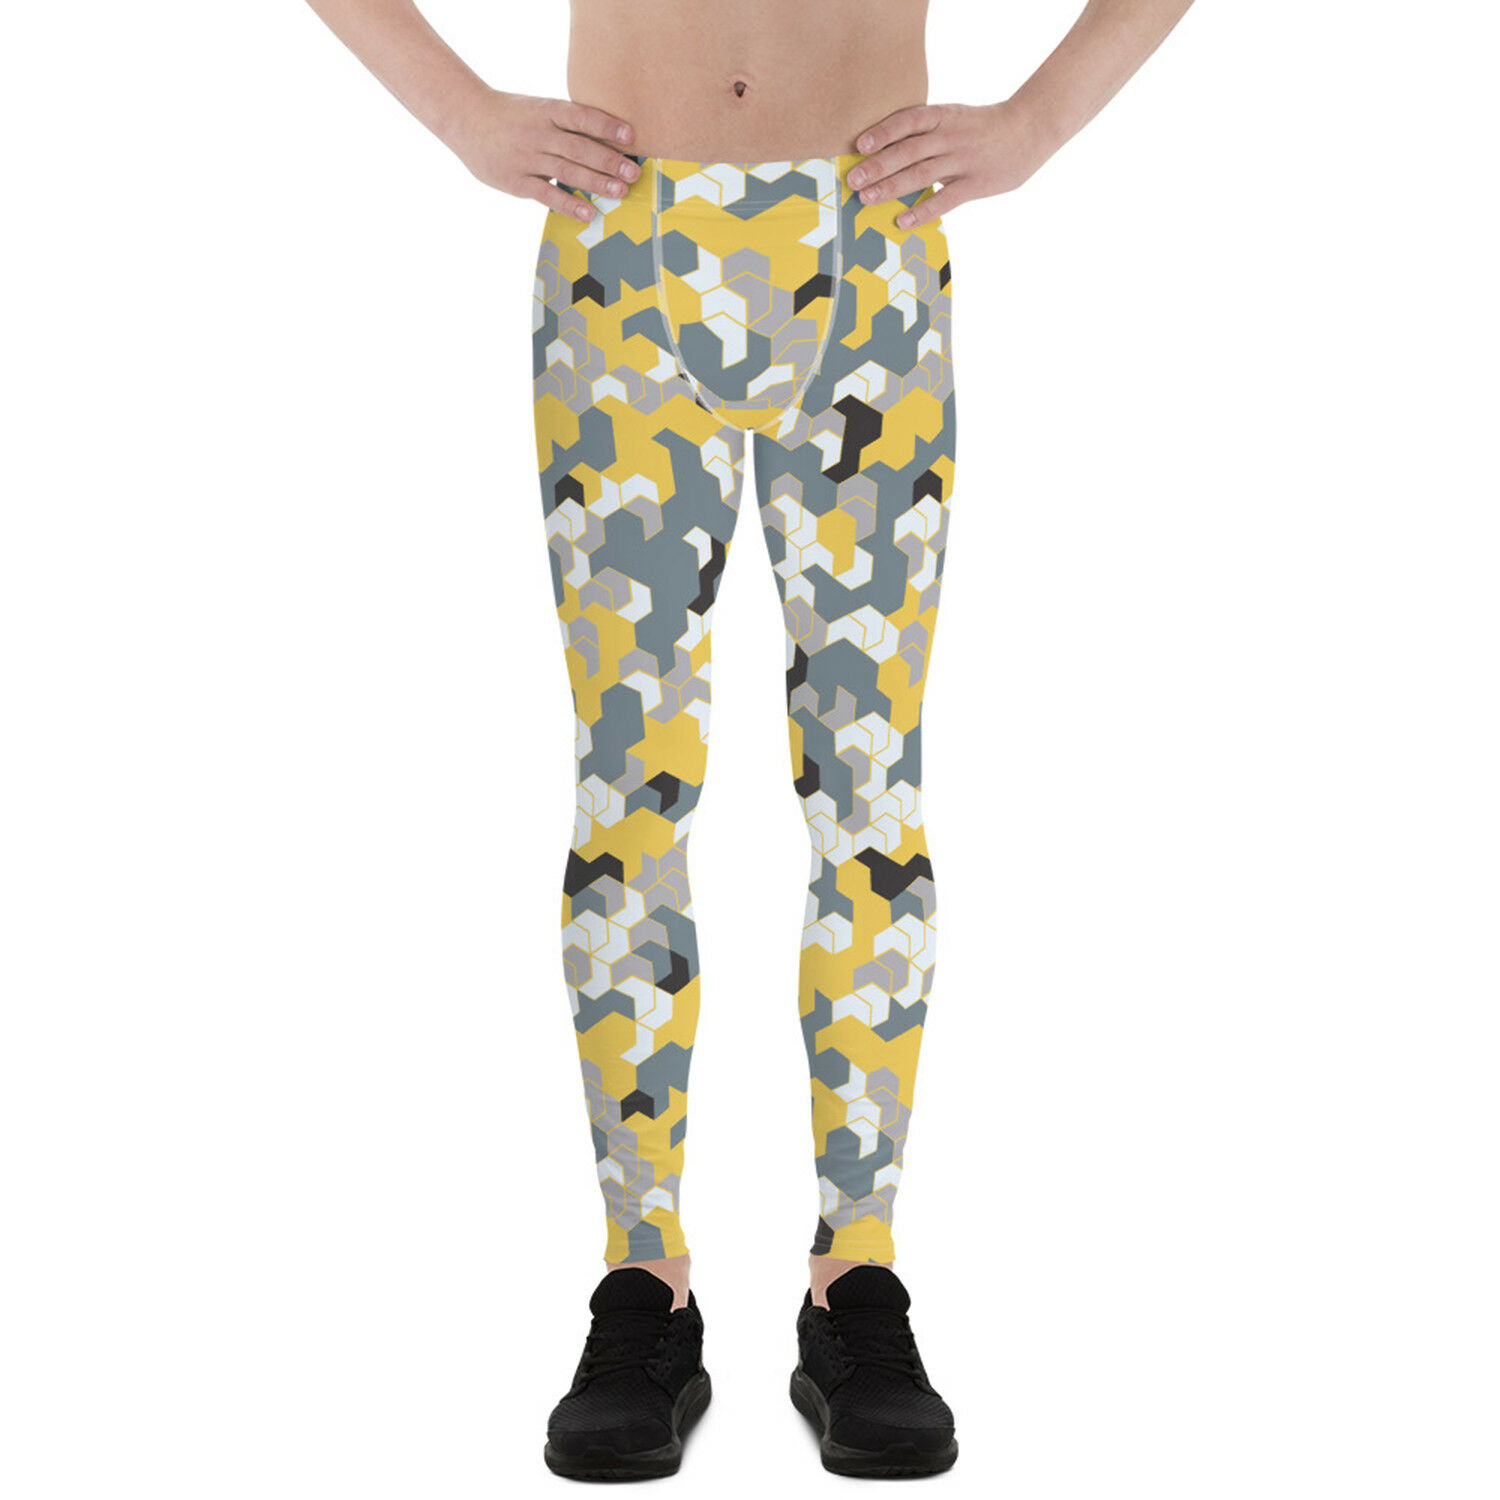 Mens Camo Leggings  giallo Hexagon Camouflage Print Cold Weather Running Pants